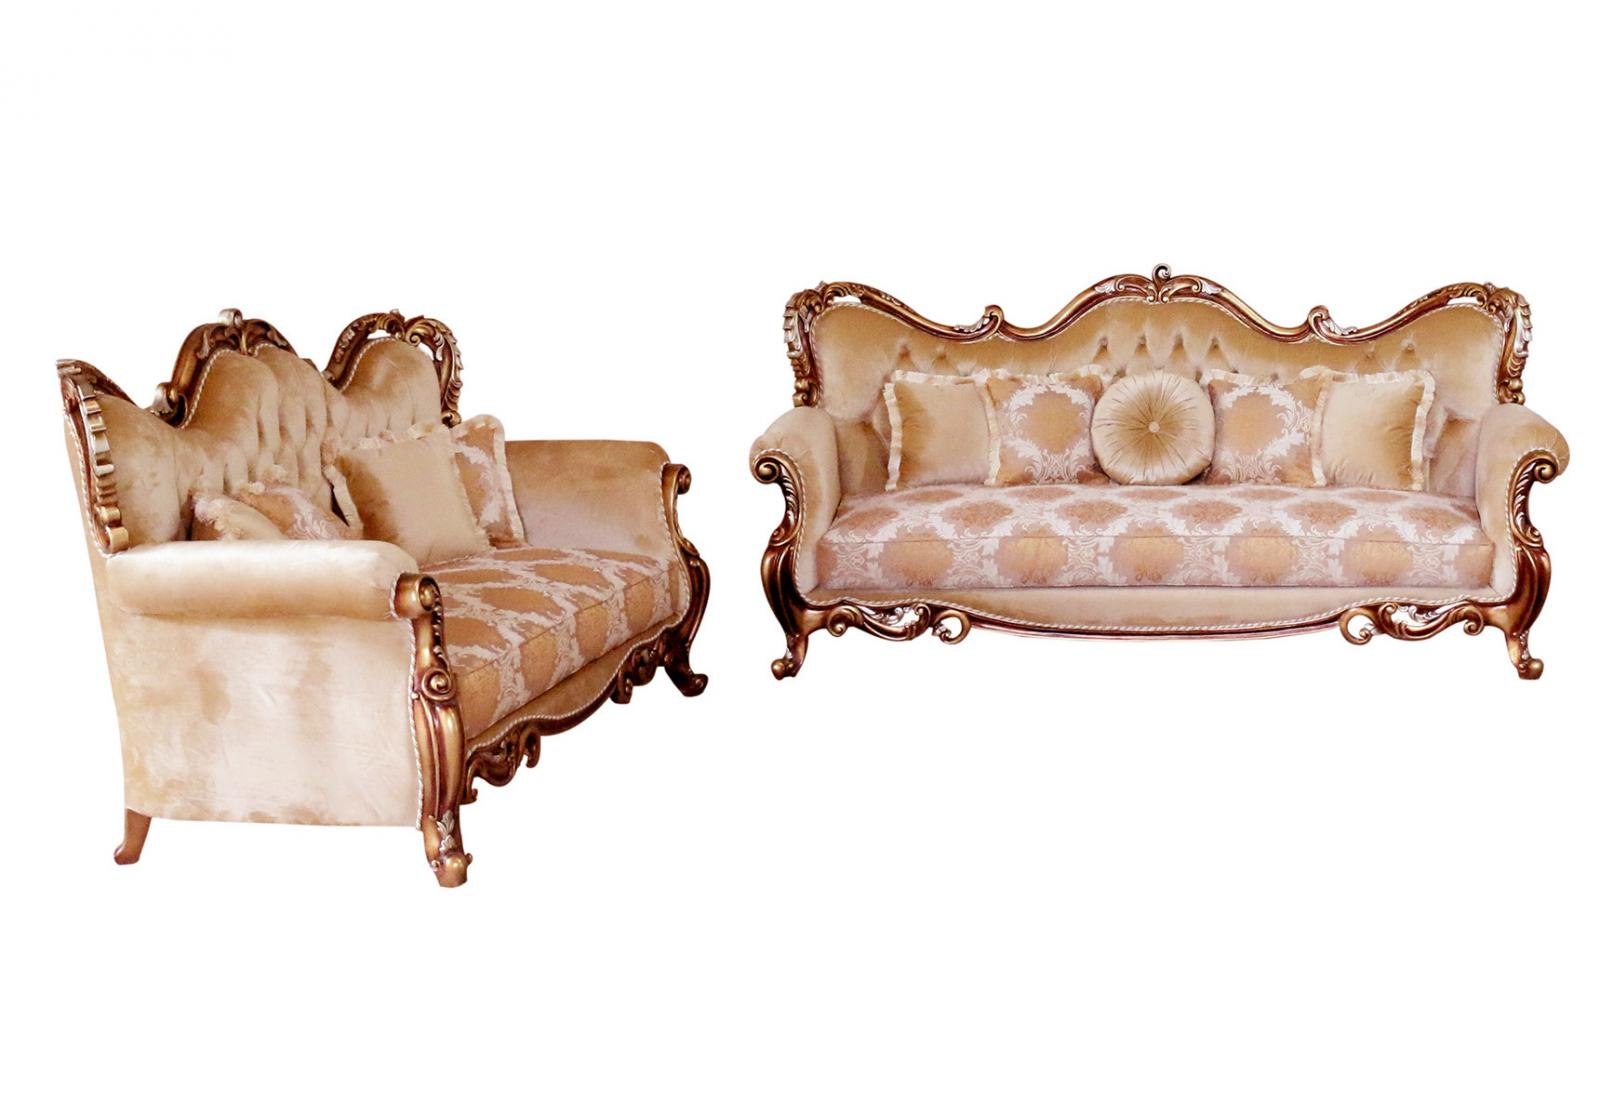 Classic  Traditional Brown  Gold  Silver  Antique Wood  Solid Hardwood and Fabric Sofa Set EUROPEAN FURNITURE 38994-S-Set-2